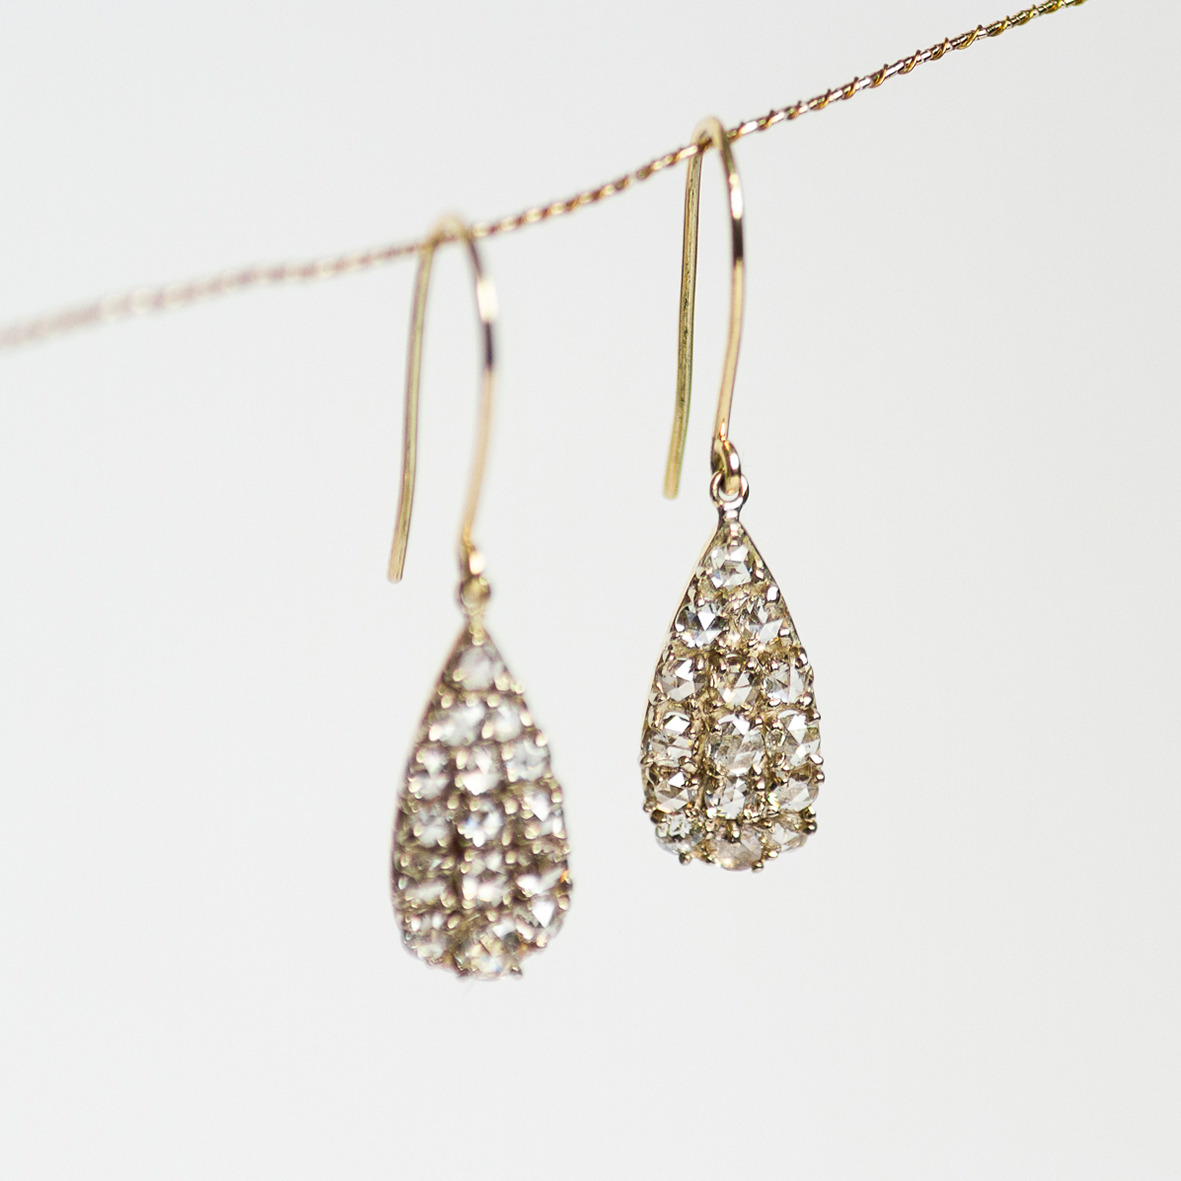 5. OONA_lotus_principal_drop rose-cut diamond earrings